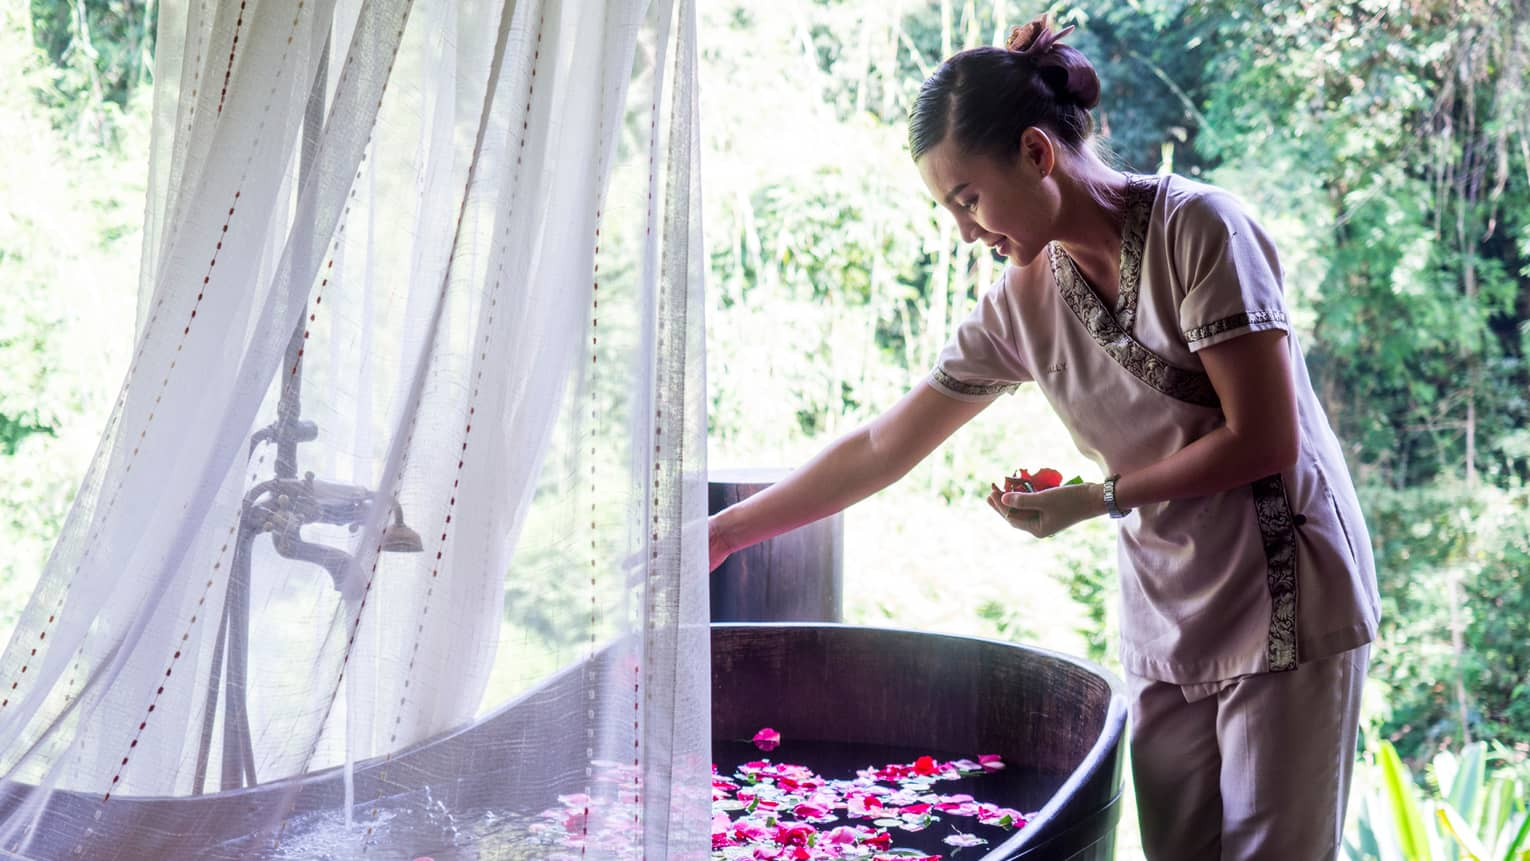 Hotel staff drops colourful flower petals in free-standing copper bathtub draped with sheer white net